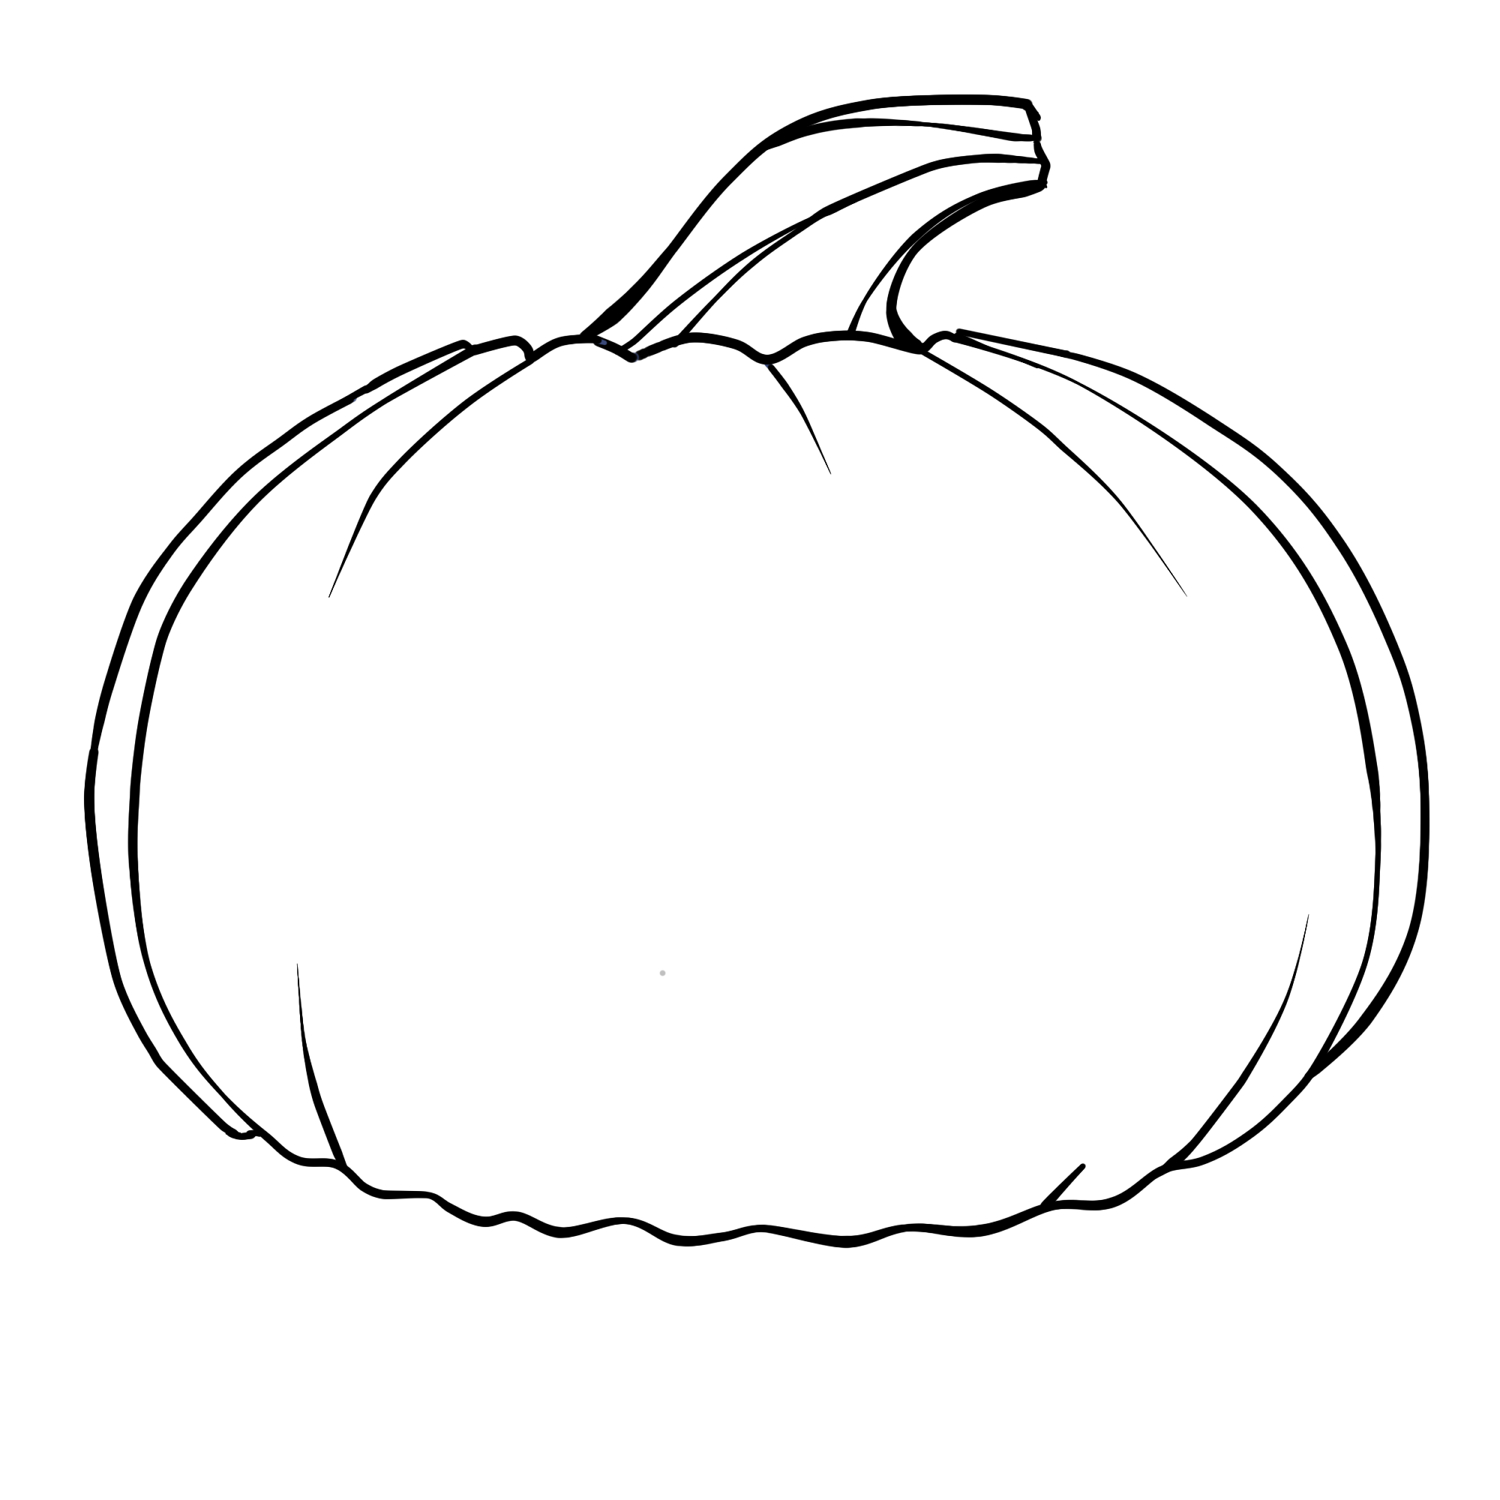 Pingail On Autumn | Pumpkin Coloring Pages, Pumpkin Outline - Pumpkin Shape Template Printable Free